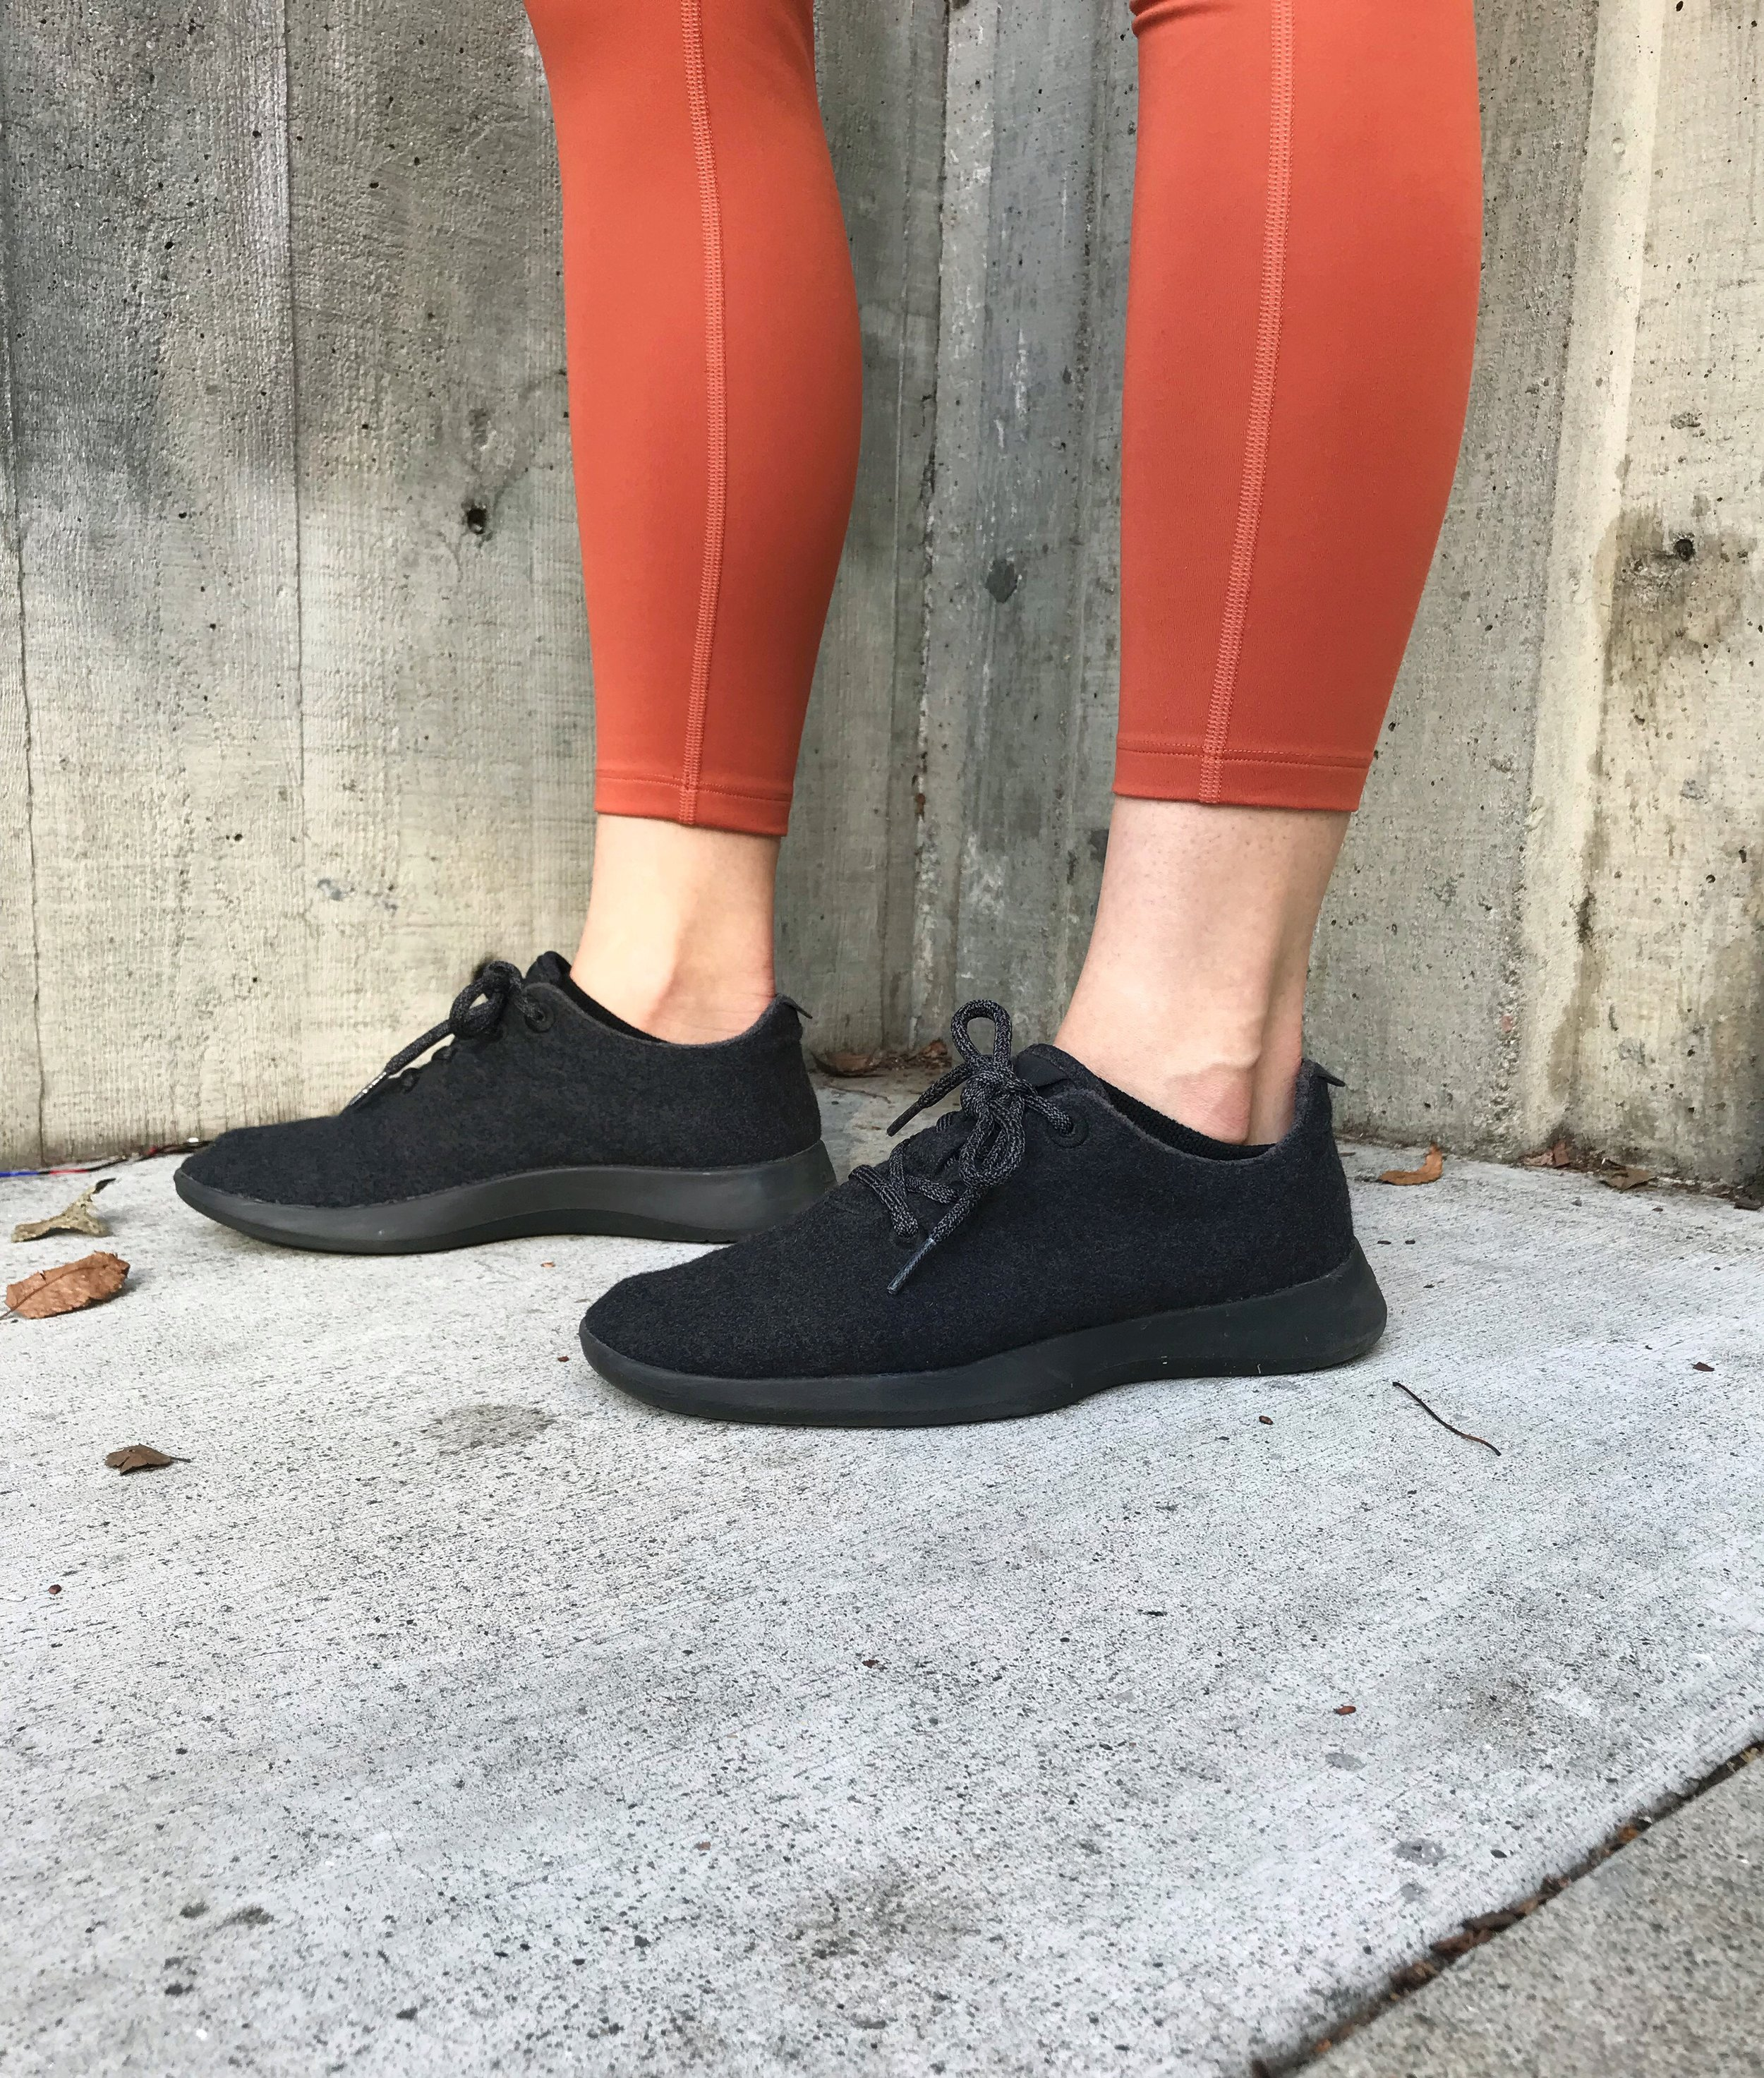 """**A note on Allbirds : Although this style is called a """"runner"""", it is meant as an everyday, athleisure shoe, as opposed to a replacement for your running shoes. I definitely do not recommend them for regular long runs as the grip and support of the sole is minimal. However, as someone who has been dubbed """"especially hardheaded"""", I've pushed these babies through occasional hill sprints and bag work sessions (oops) and I'm happy to report, they are still intact!"""